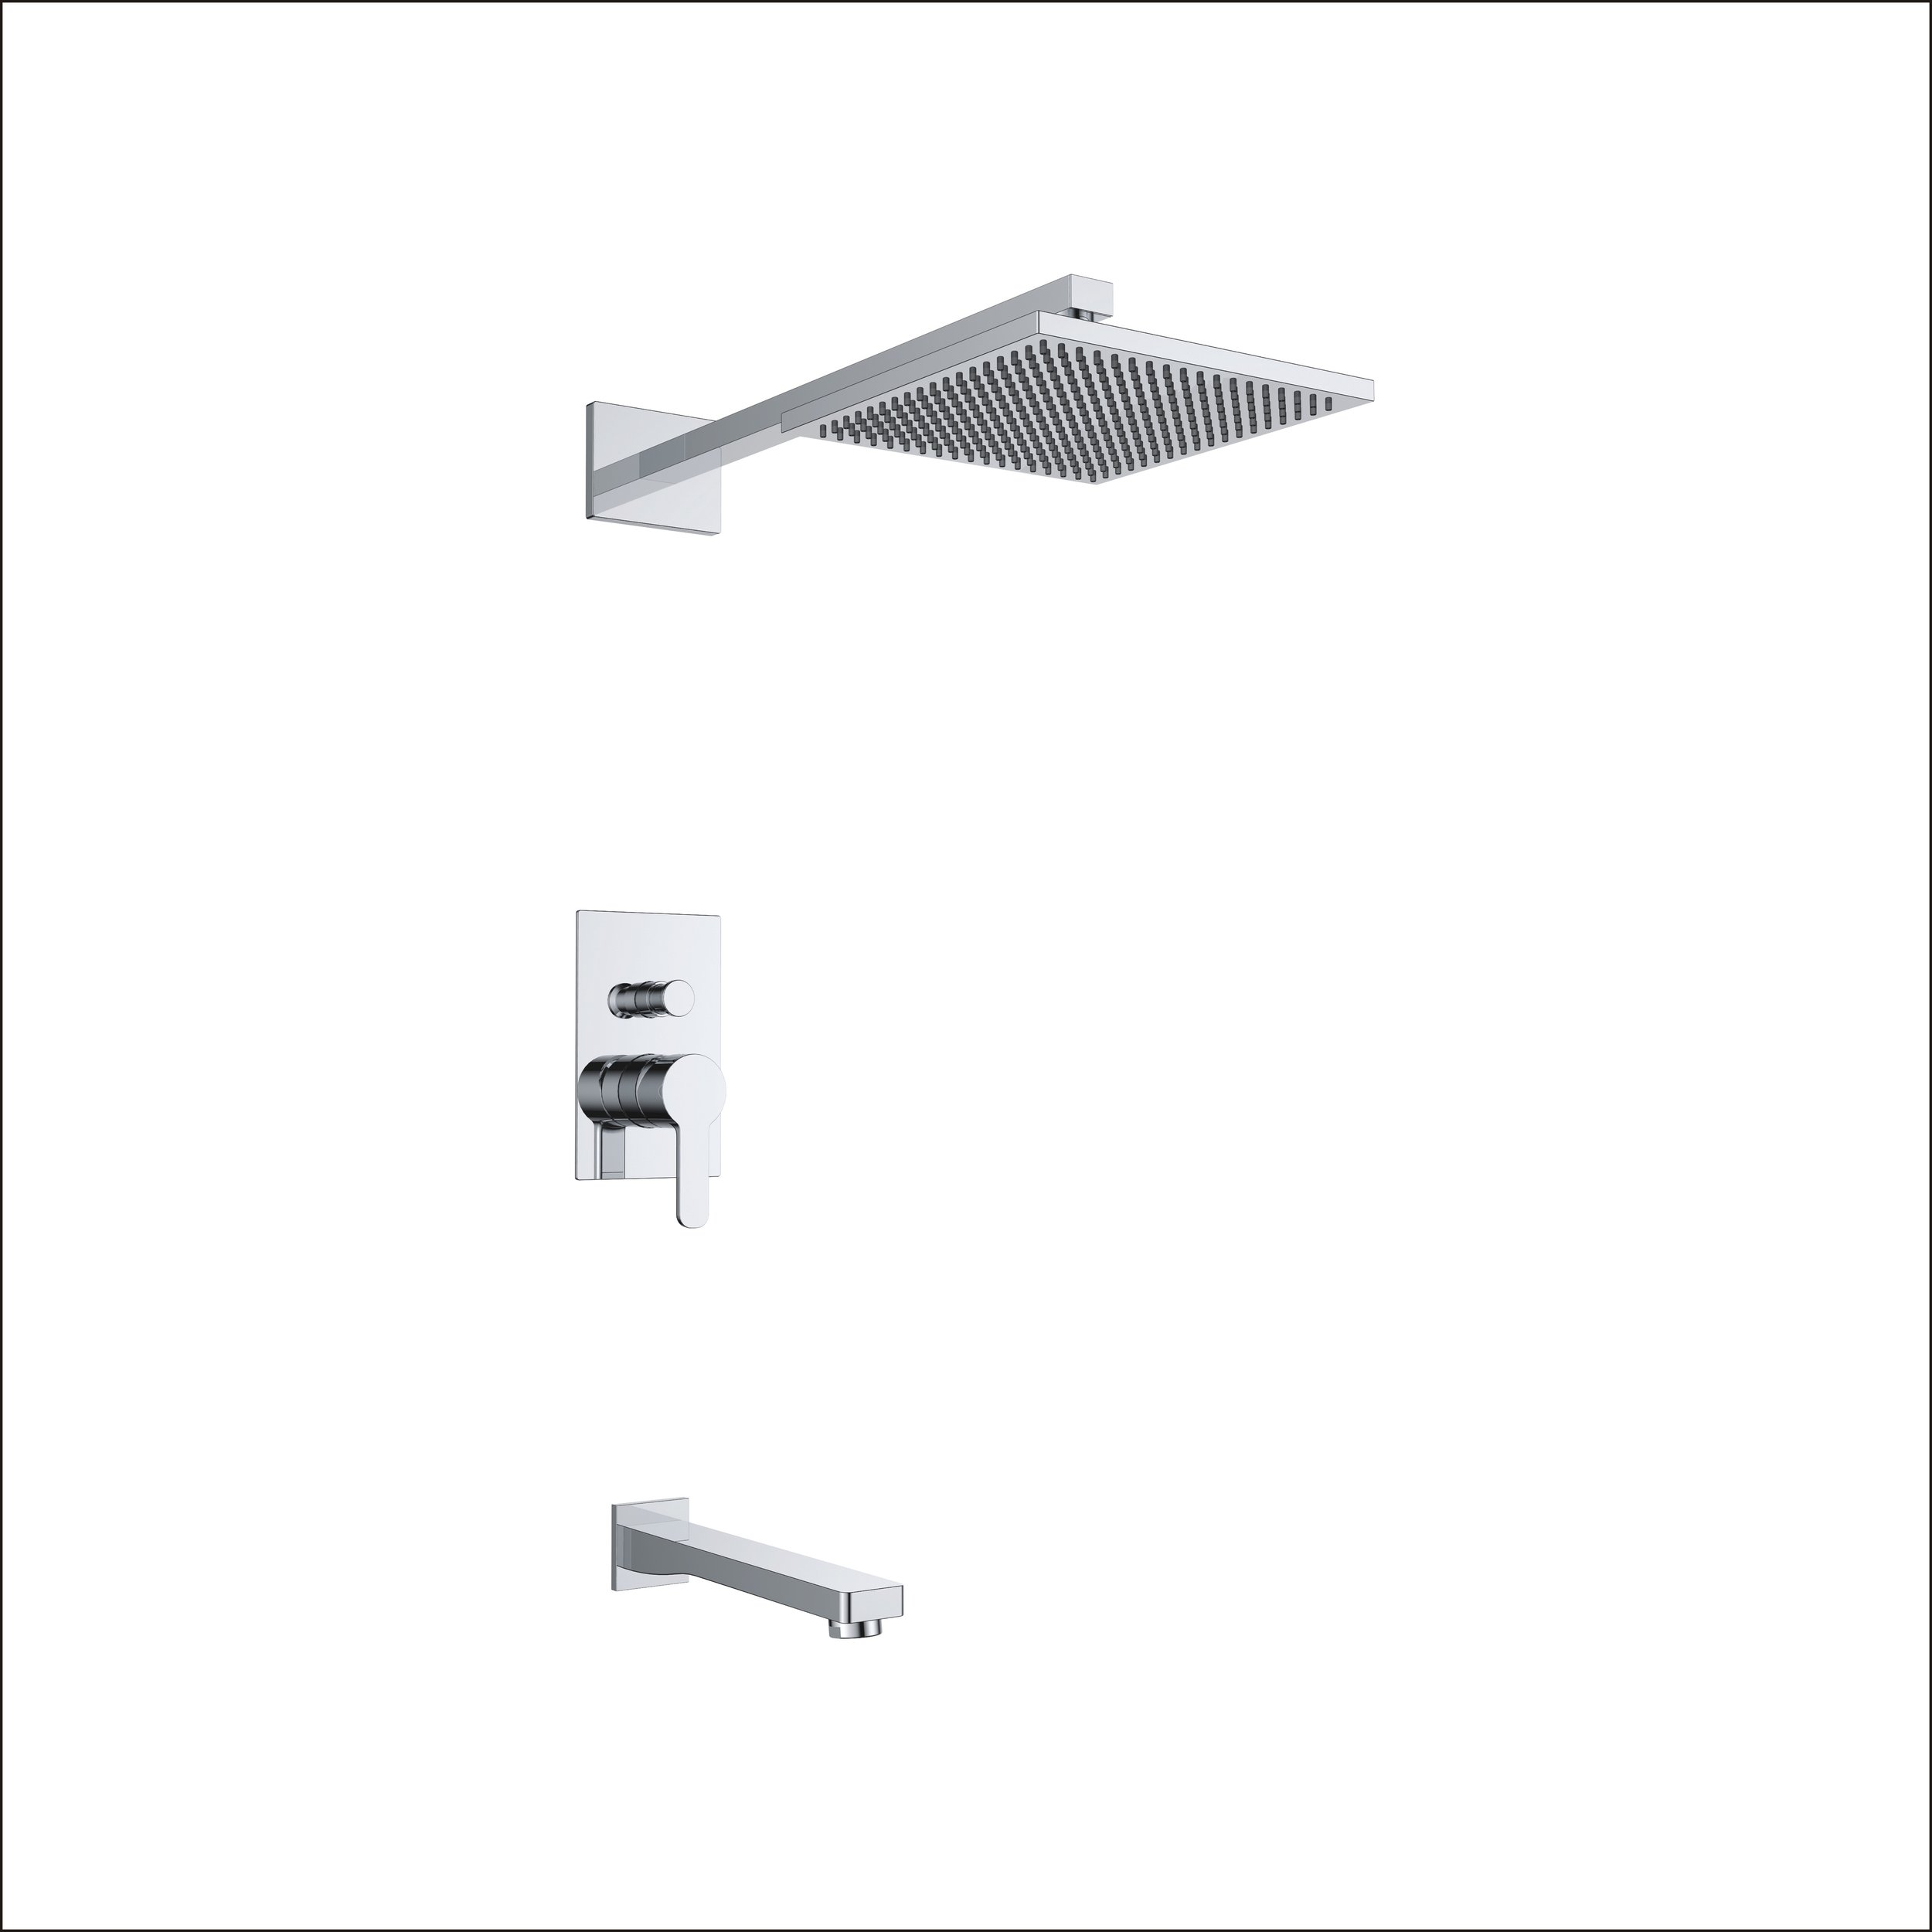 7187-101: Concealed shower valve with spout and head shower